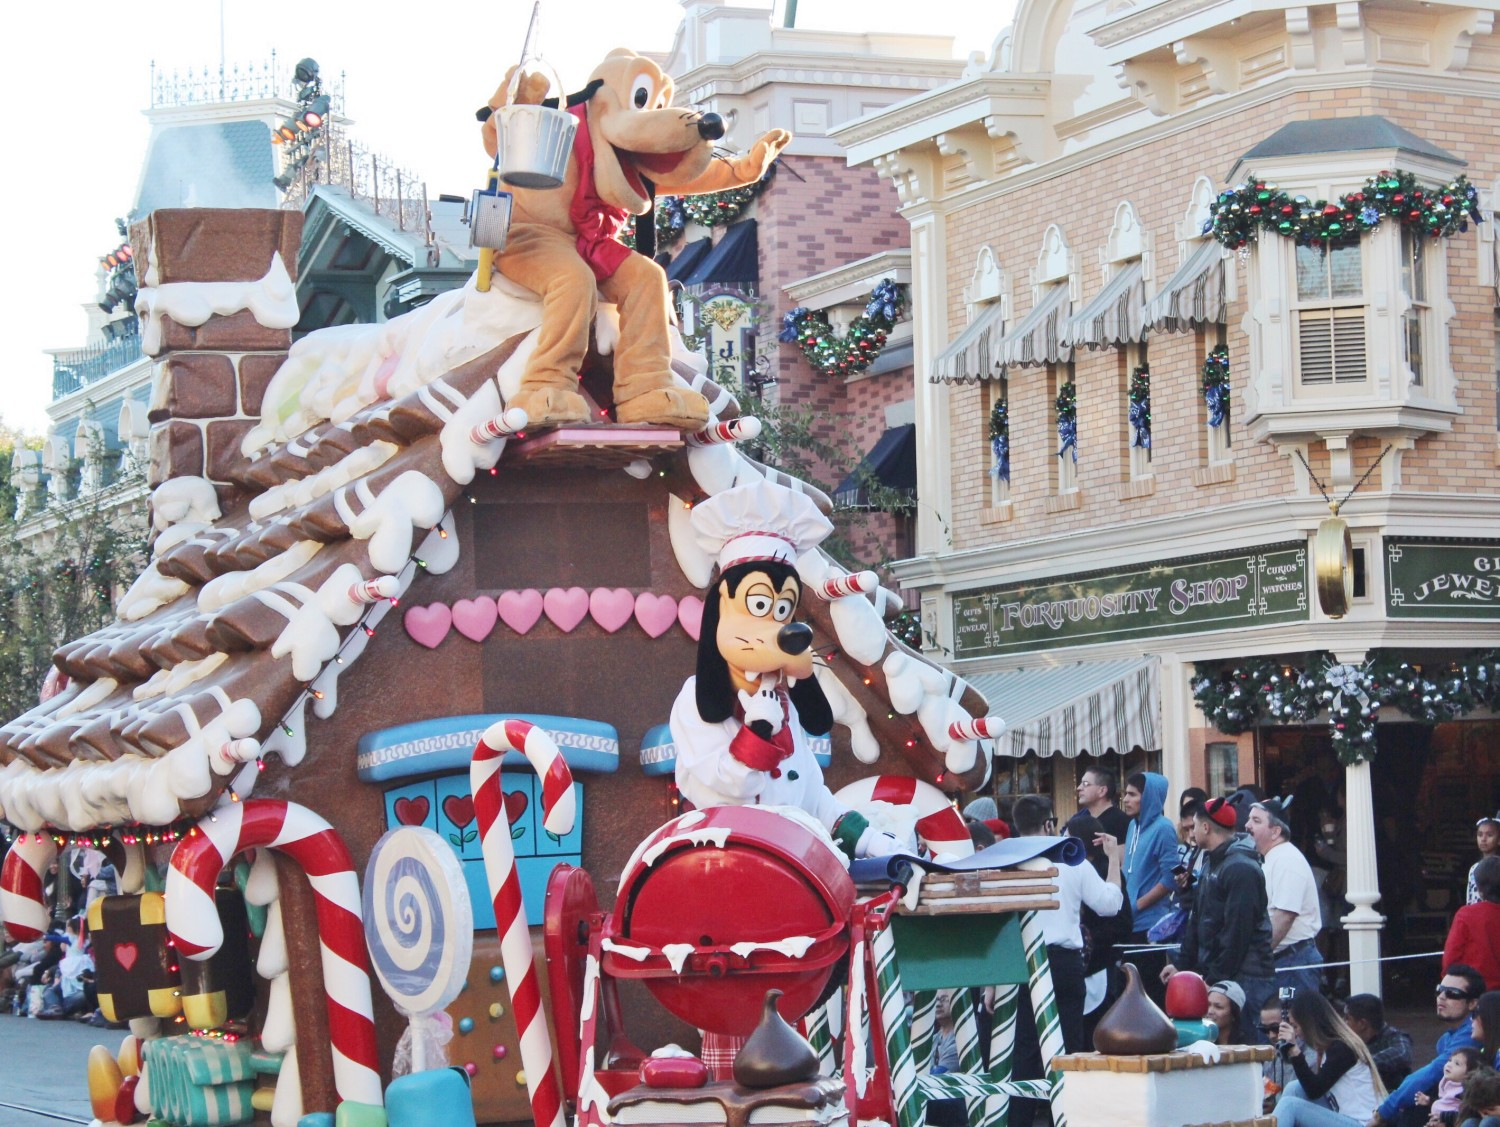 Disneyland A Christmas Fantasy Parade Goofy and Pluto